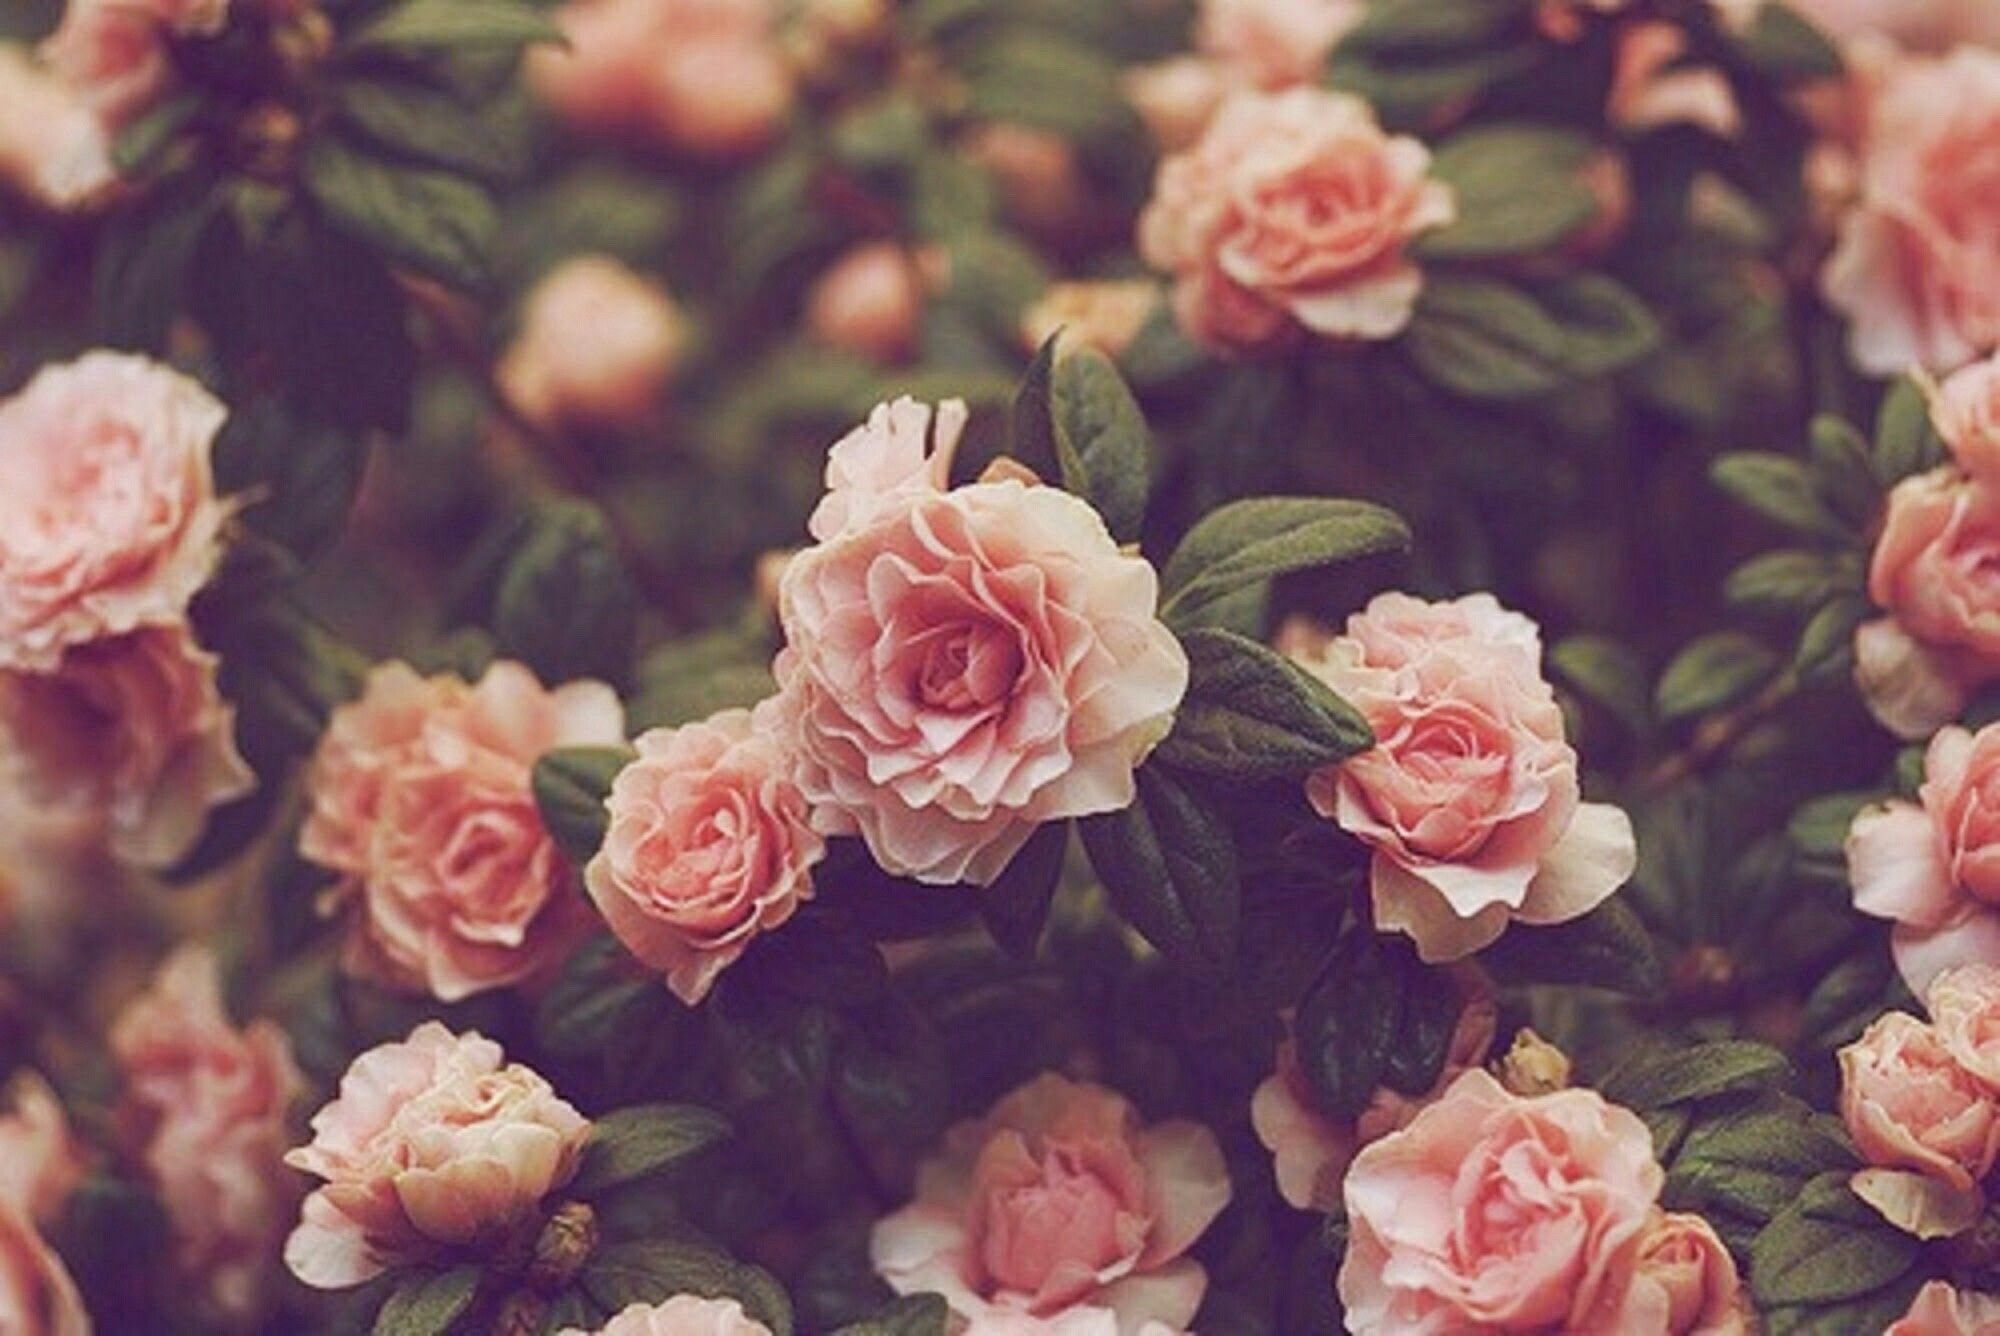 Pin By Roxanne Santana On Photography Vintage Flowers Wallpaper Vintage Flower Backgrounds Flower Backgrounds